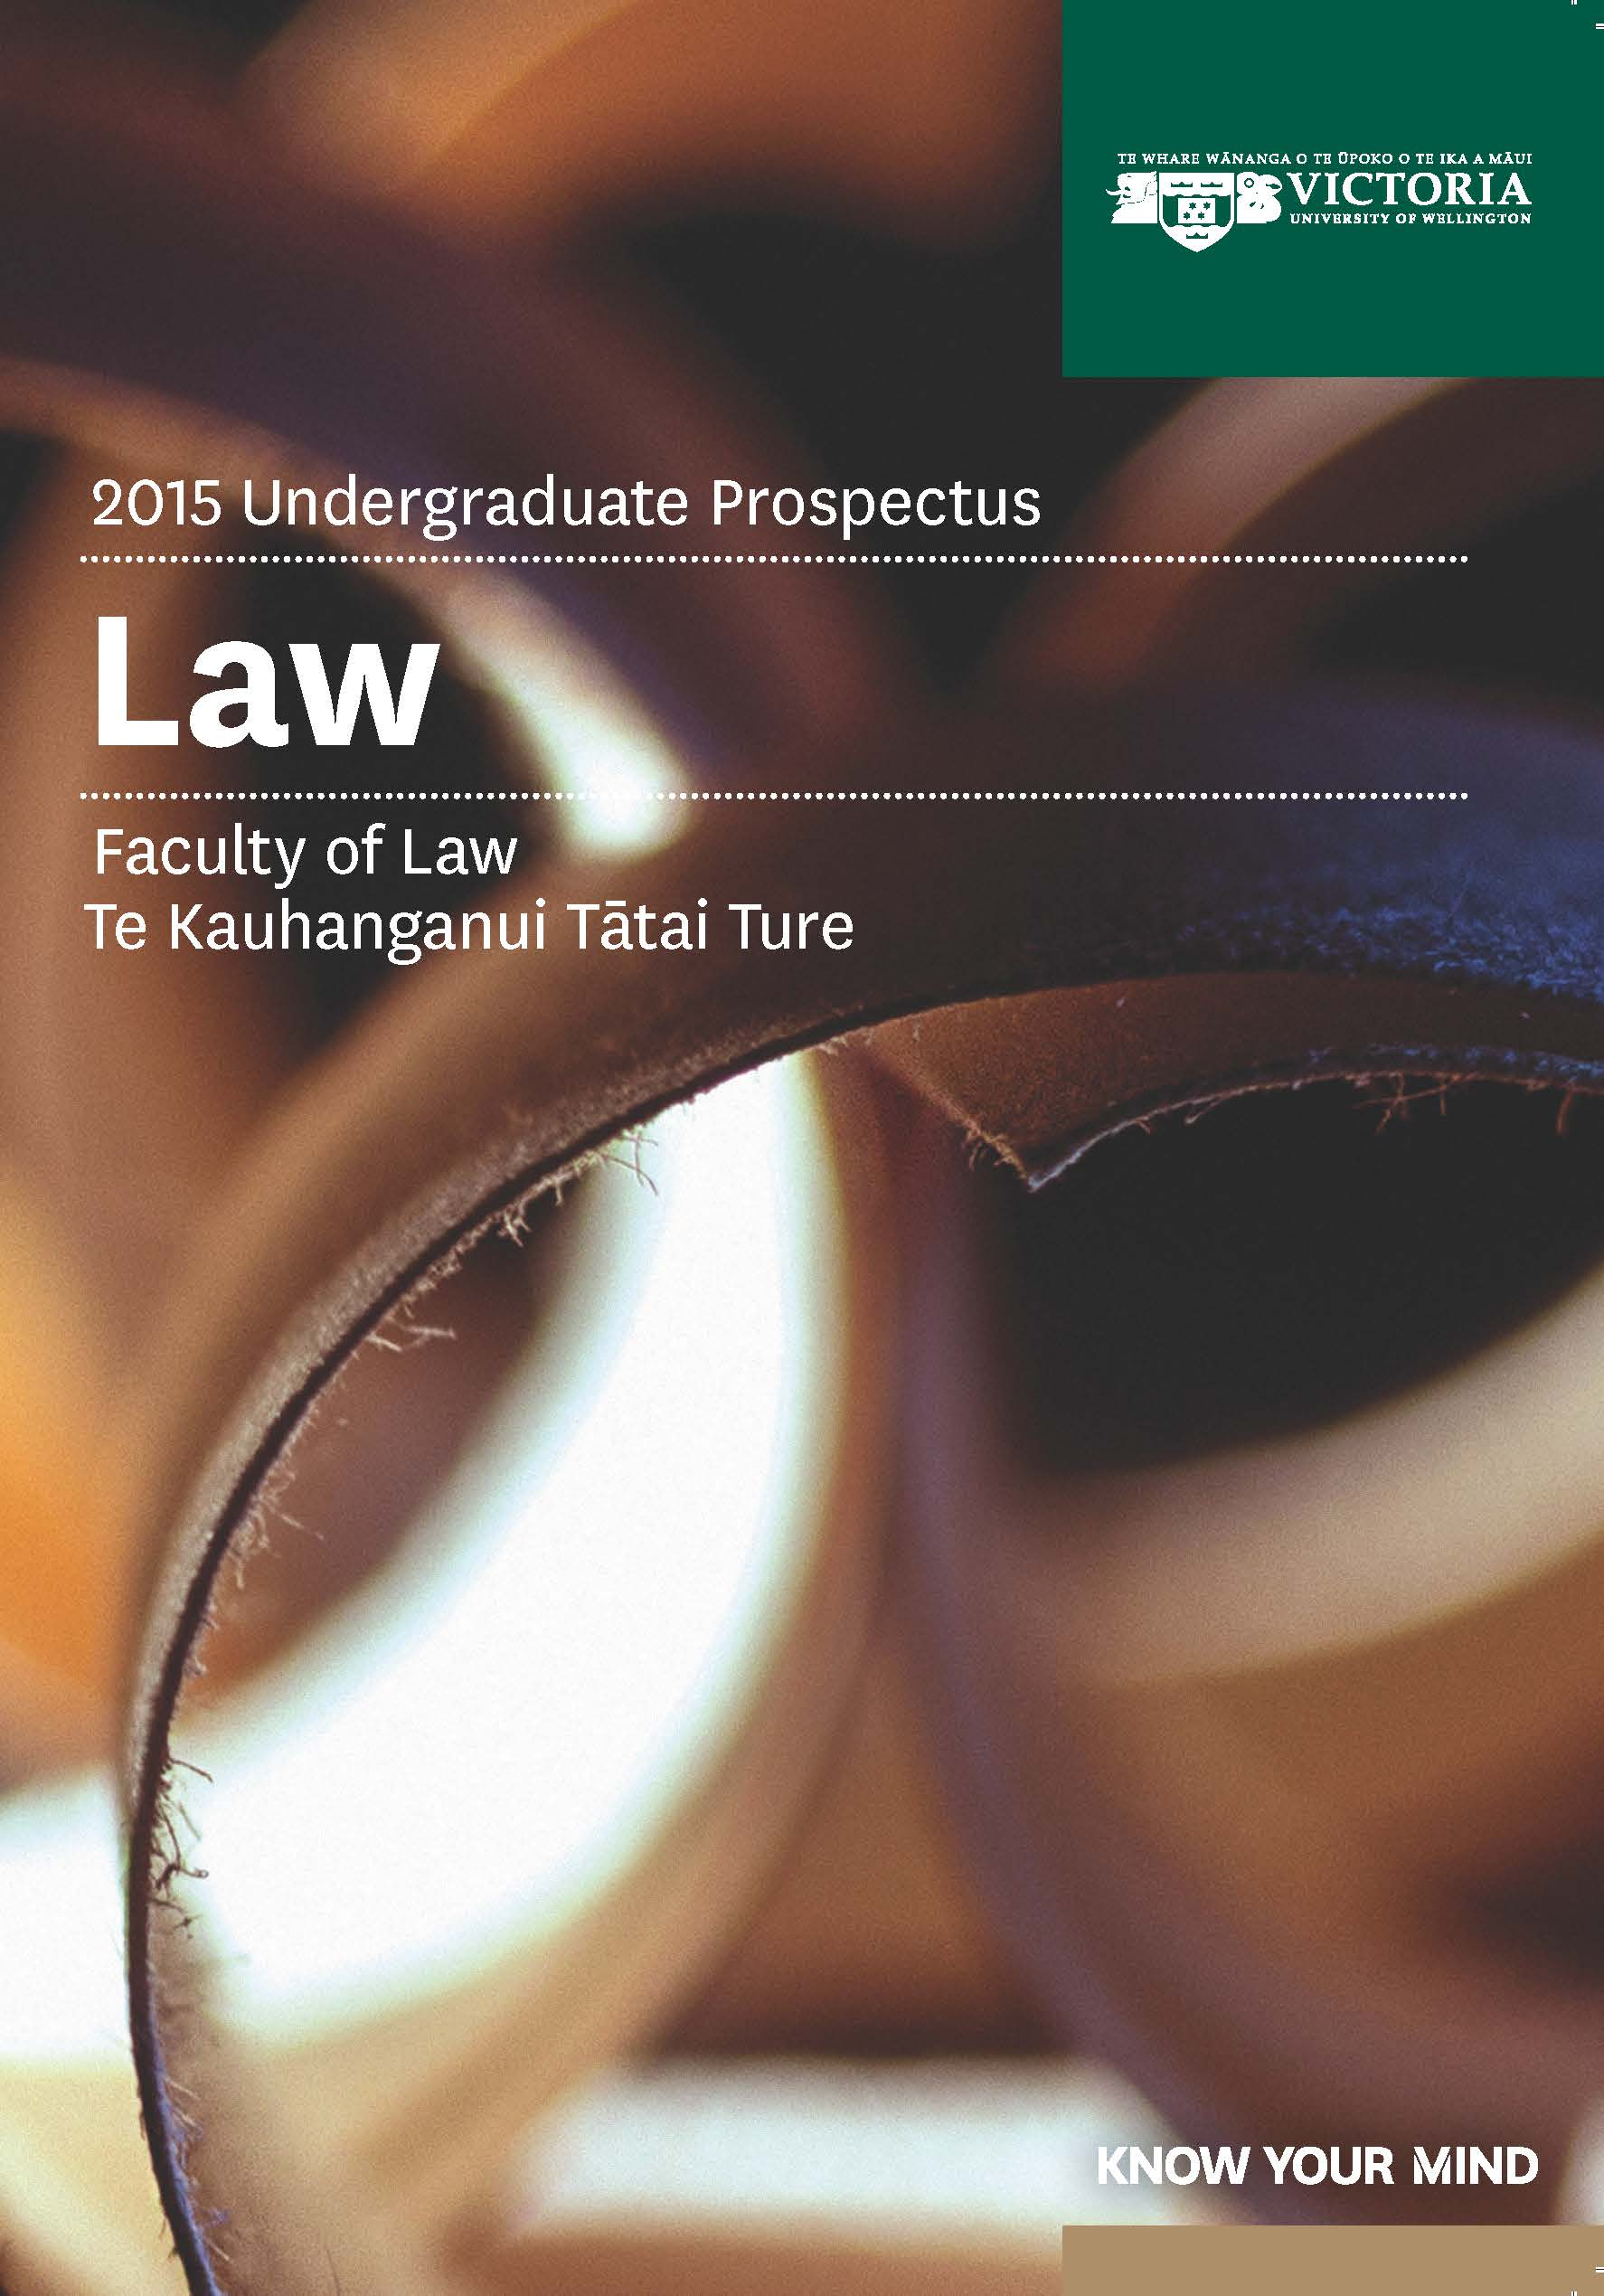 Law Prospectus Cover 2015